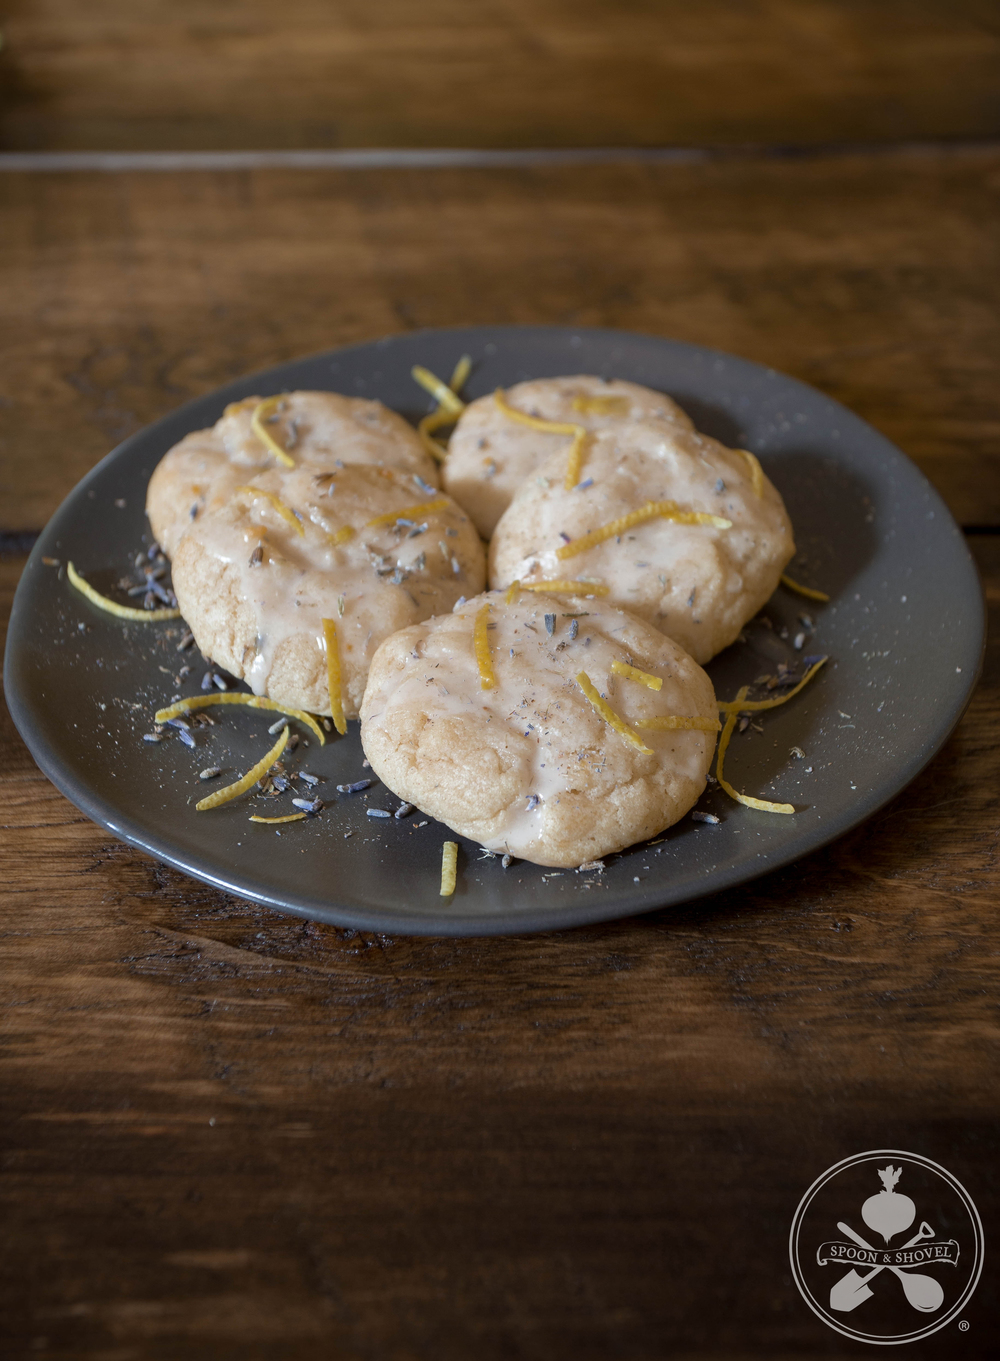 Bitters-infused vegan lavender lemon glazed cookies from The Spoon + Shovel